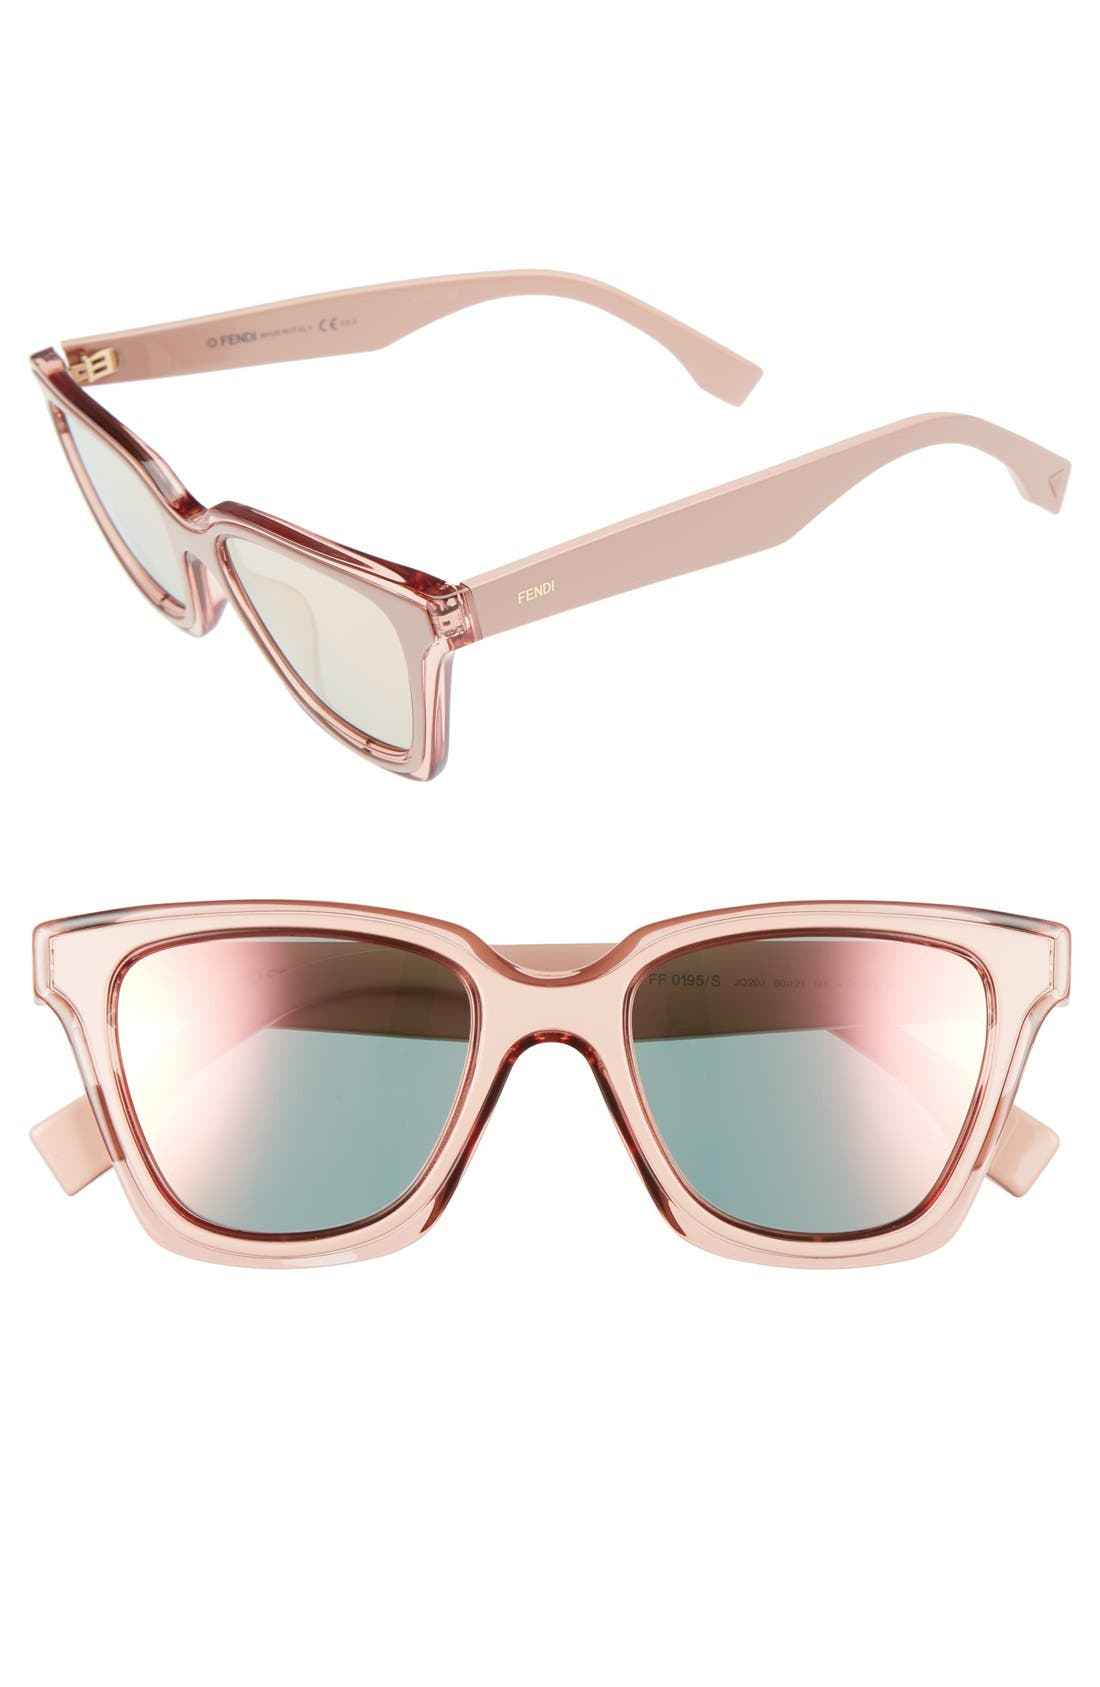 Be You 50mm Gradient Sunglasses,                         Main,                         color, Pink